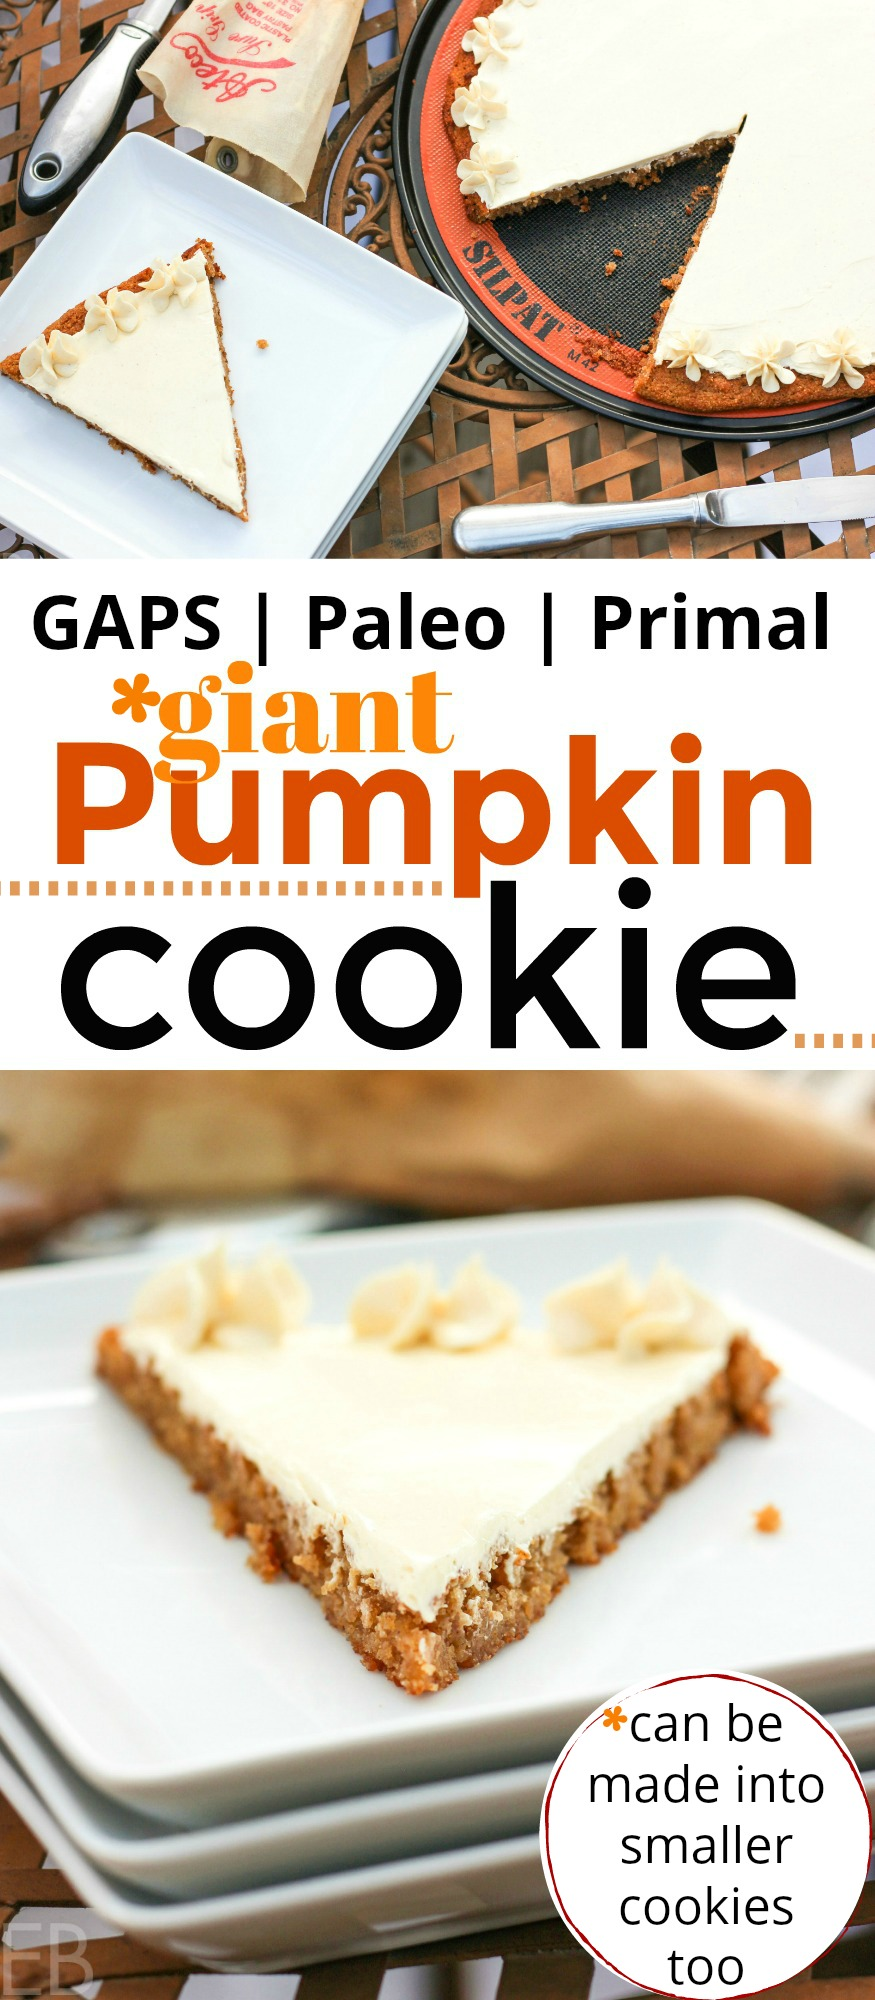 GAPS Diet & Paleo Giant Pumpkin Cookie with Buttercream Frosting — can be made into normal size cookies too! You'll love this special treat and so will your family! Great ingredients, easy on digestion, yet sooo yummy!! #paleo #gapsdiet #pumpkin #cookie #dessert #grainfree #cake #frosting #buttercream